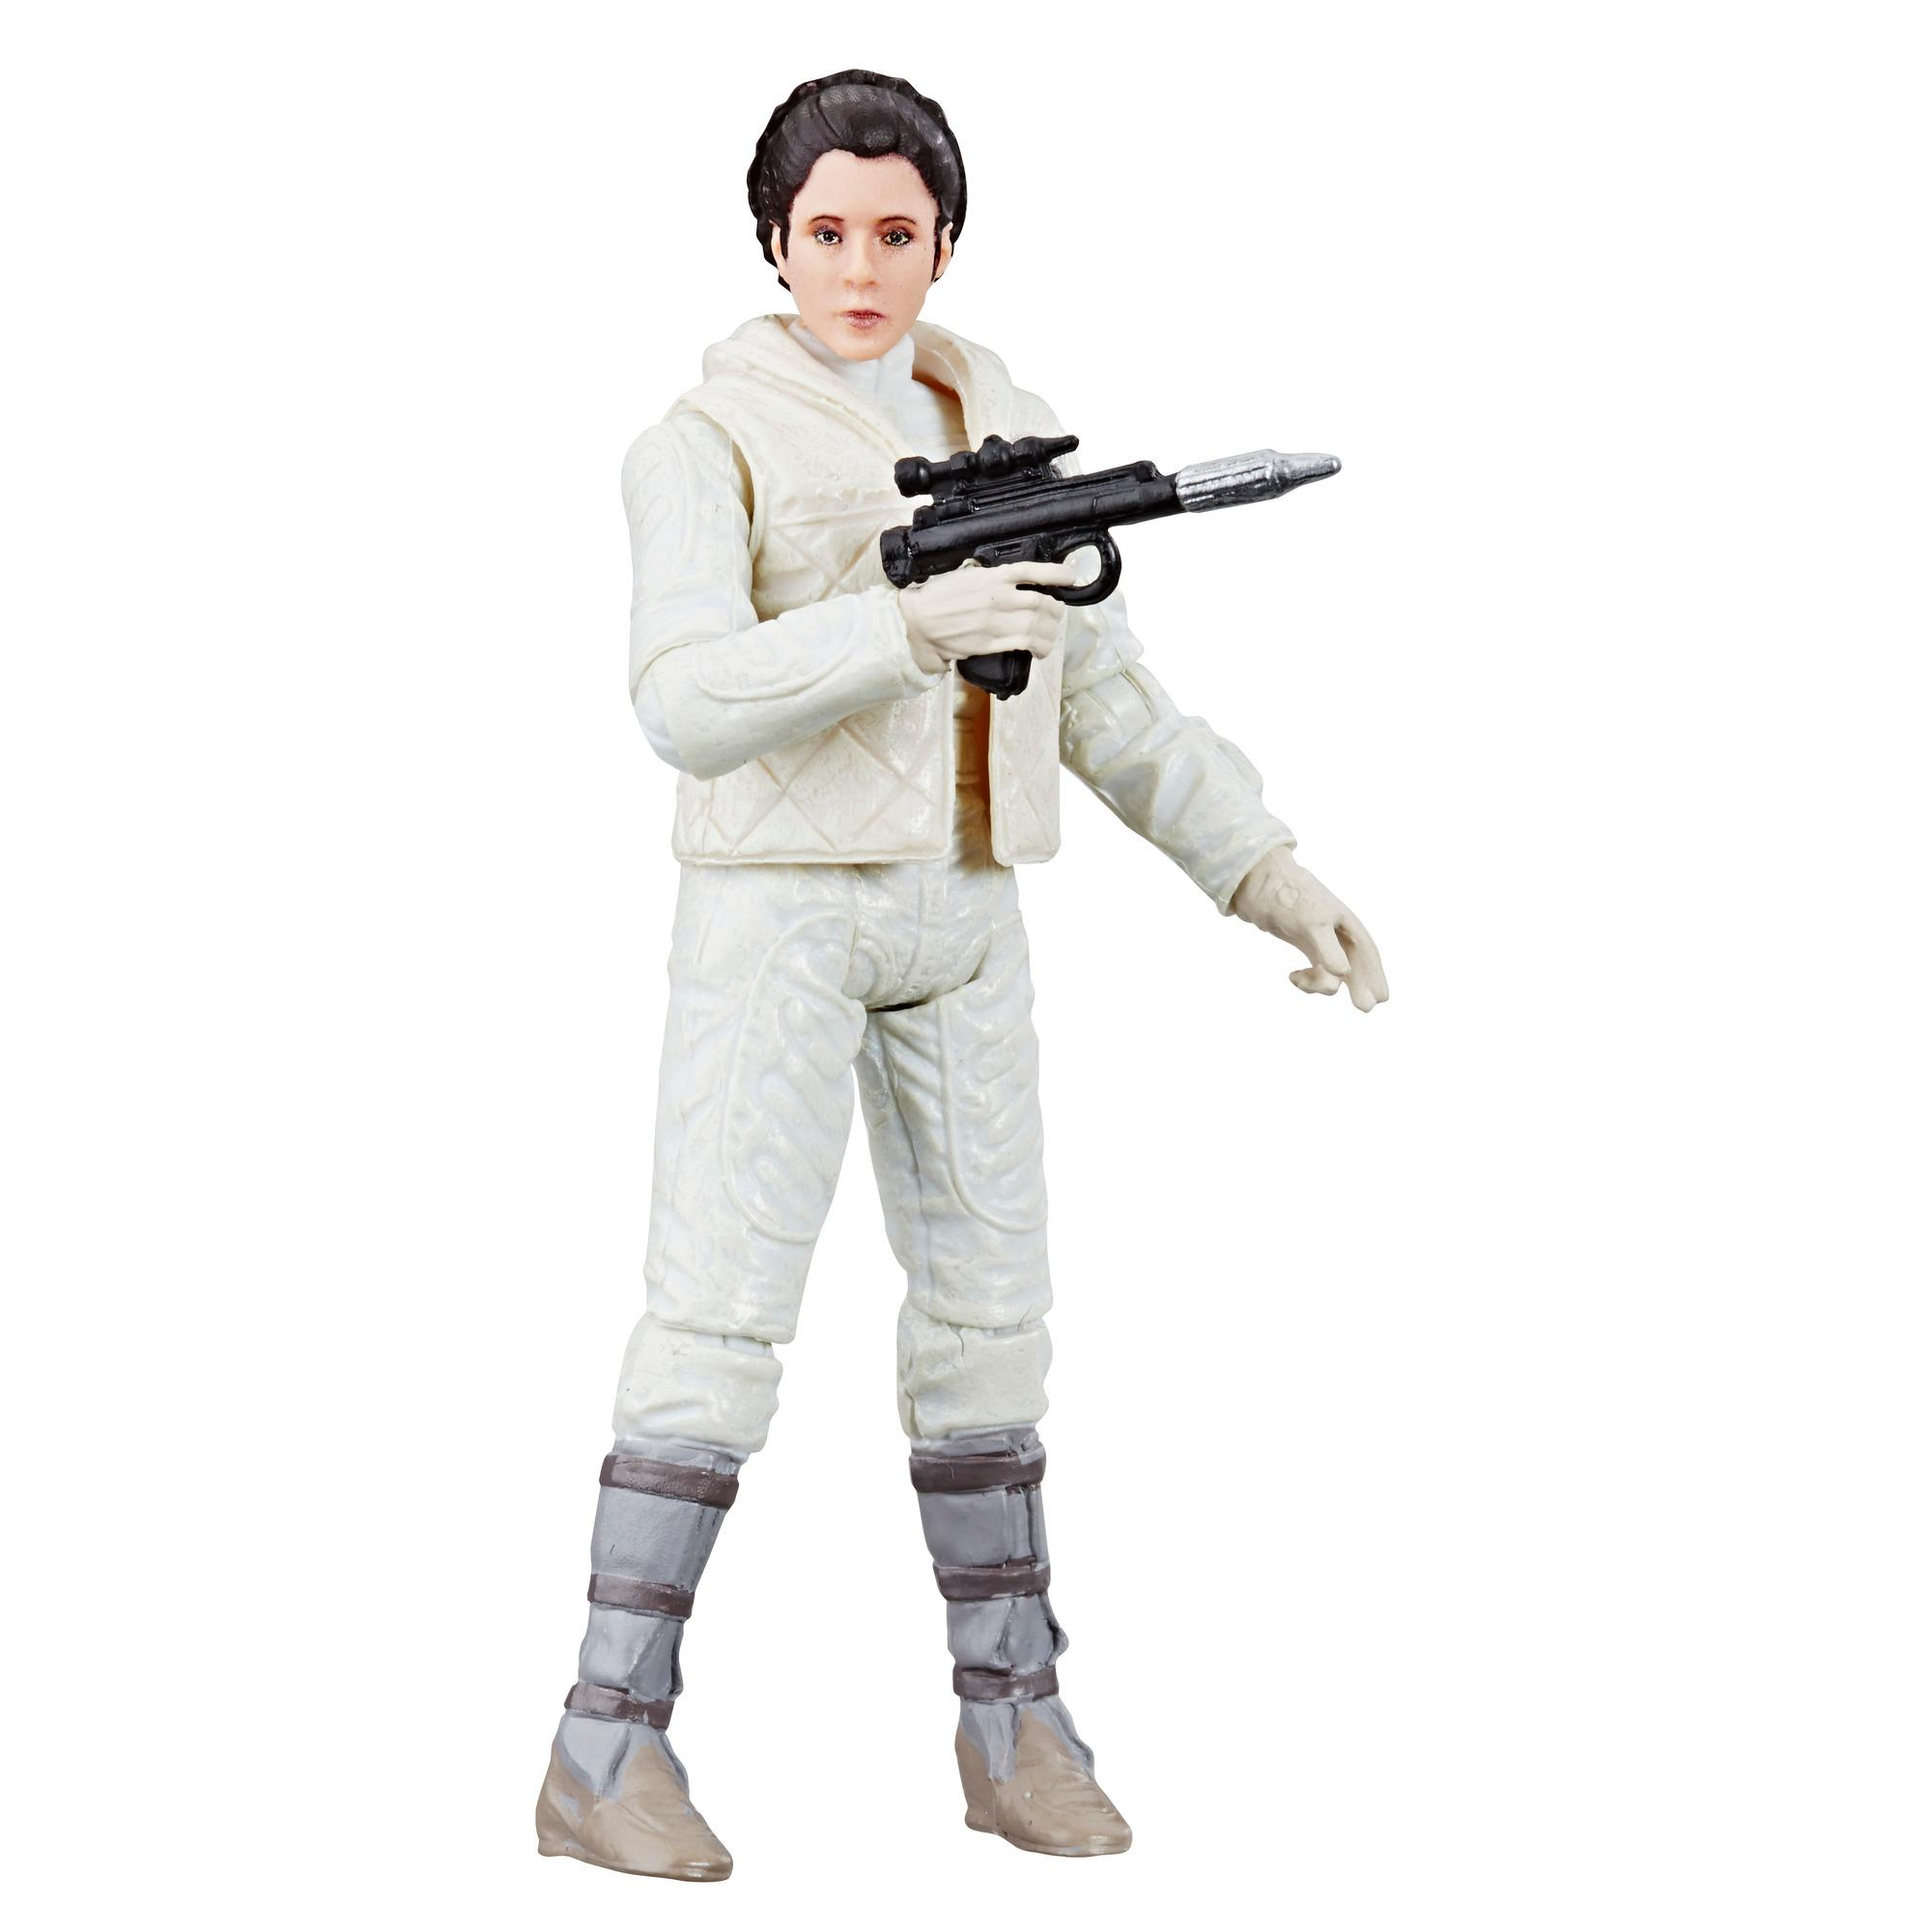 Star Wars The Vintage Collection Star Wars: The Empire Strikes Back Princess Leia Organa (Hoth) 3.75-inch Figure